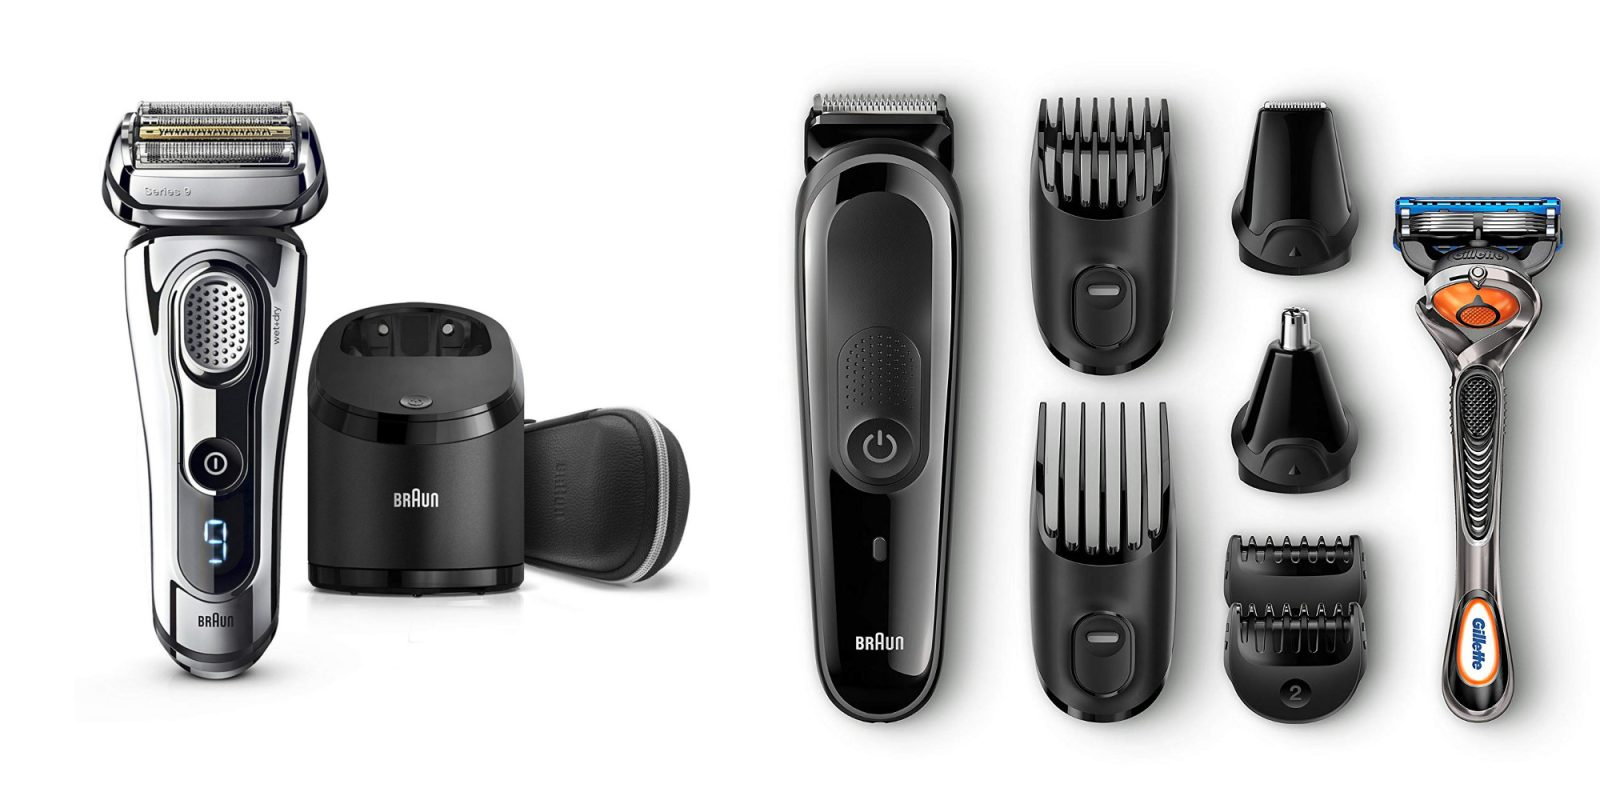 Prime Day Braun and Philips shaver deals starting from $20 ($95 off)